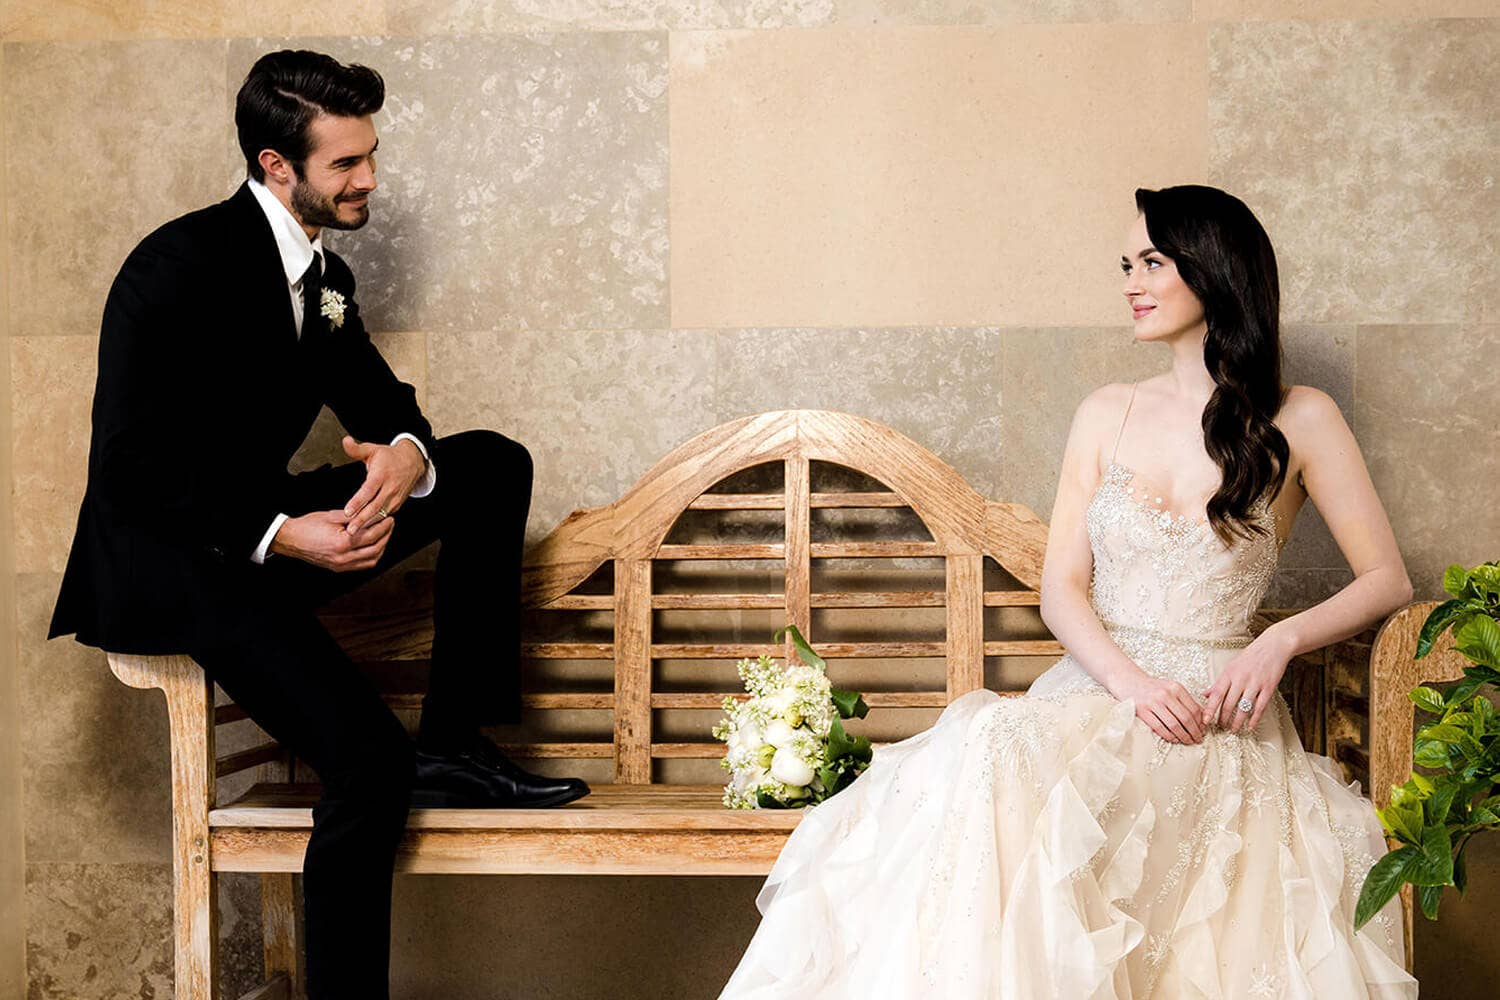 Groom & Bride looking at each other while sitting on a bench